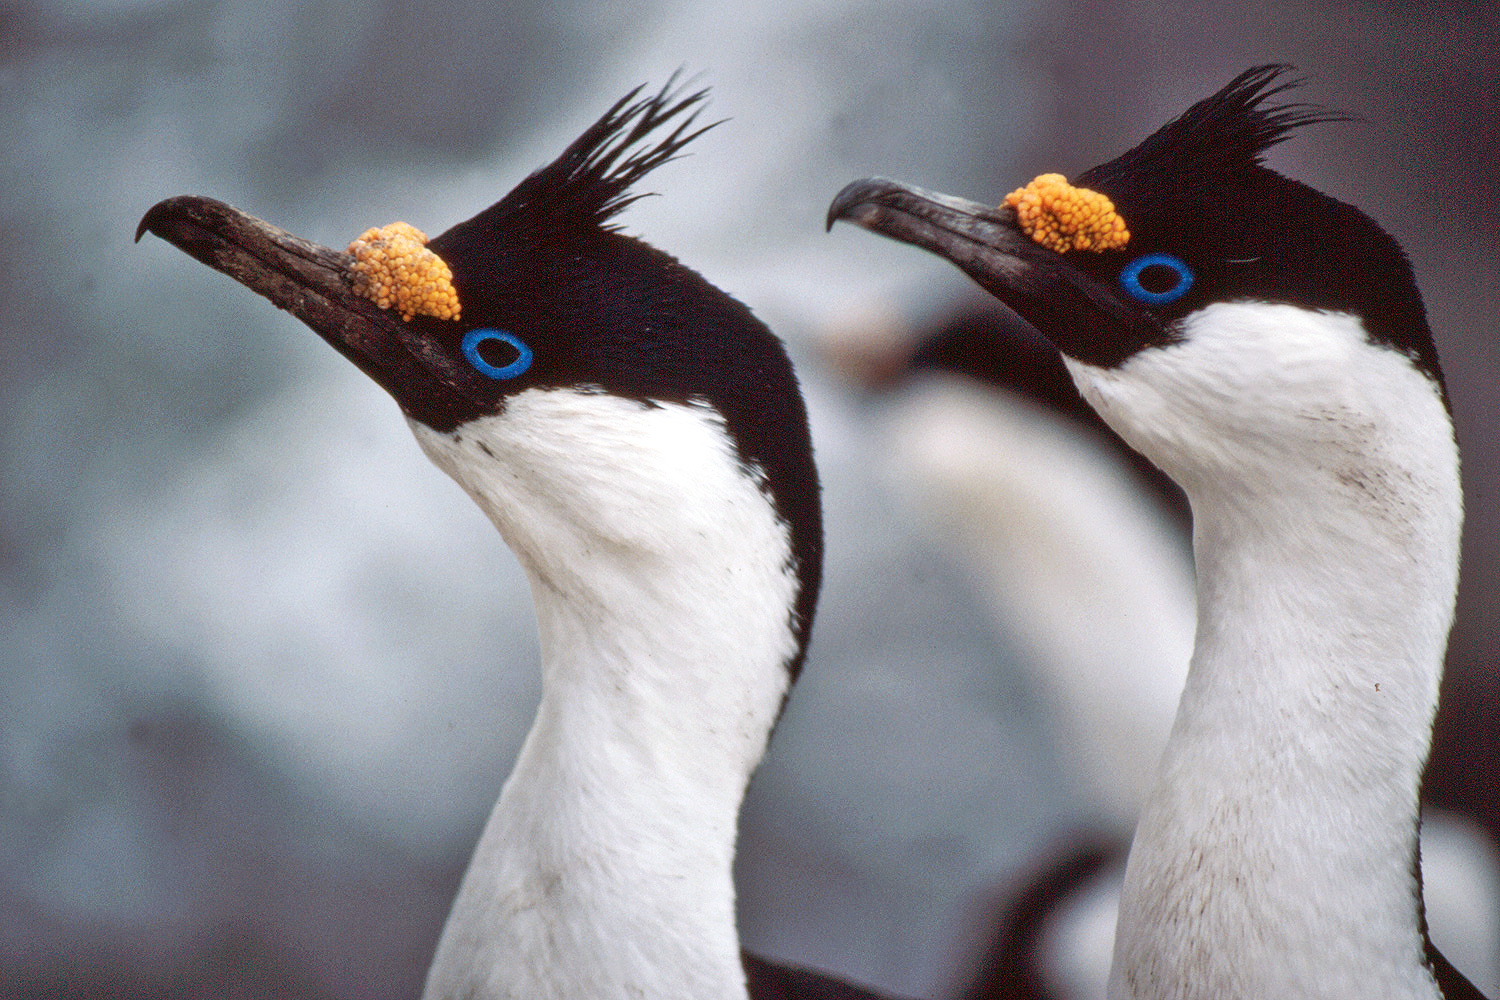 Blue Eyed/Imperial Shag